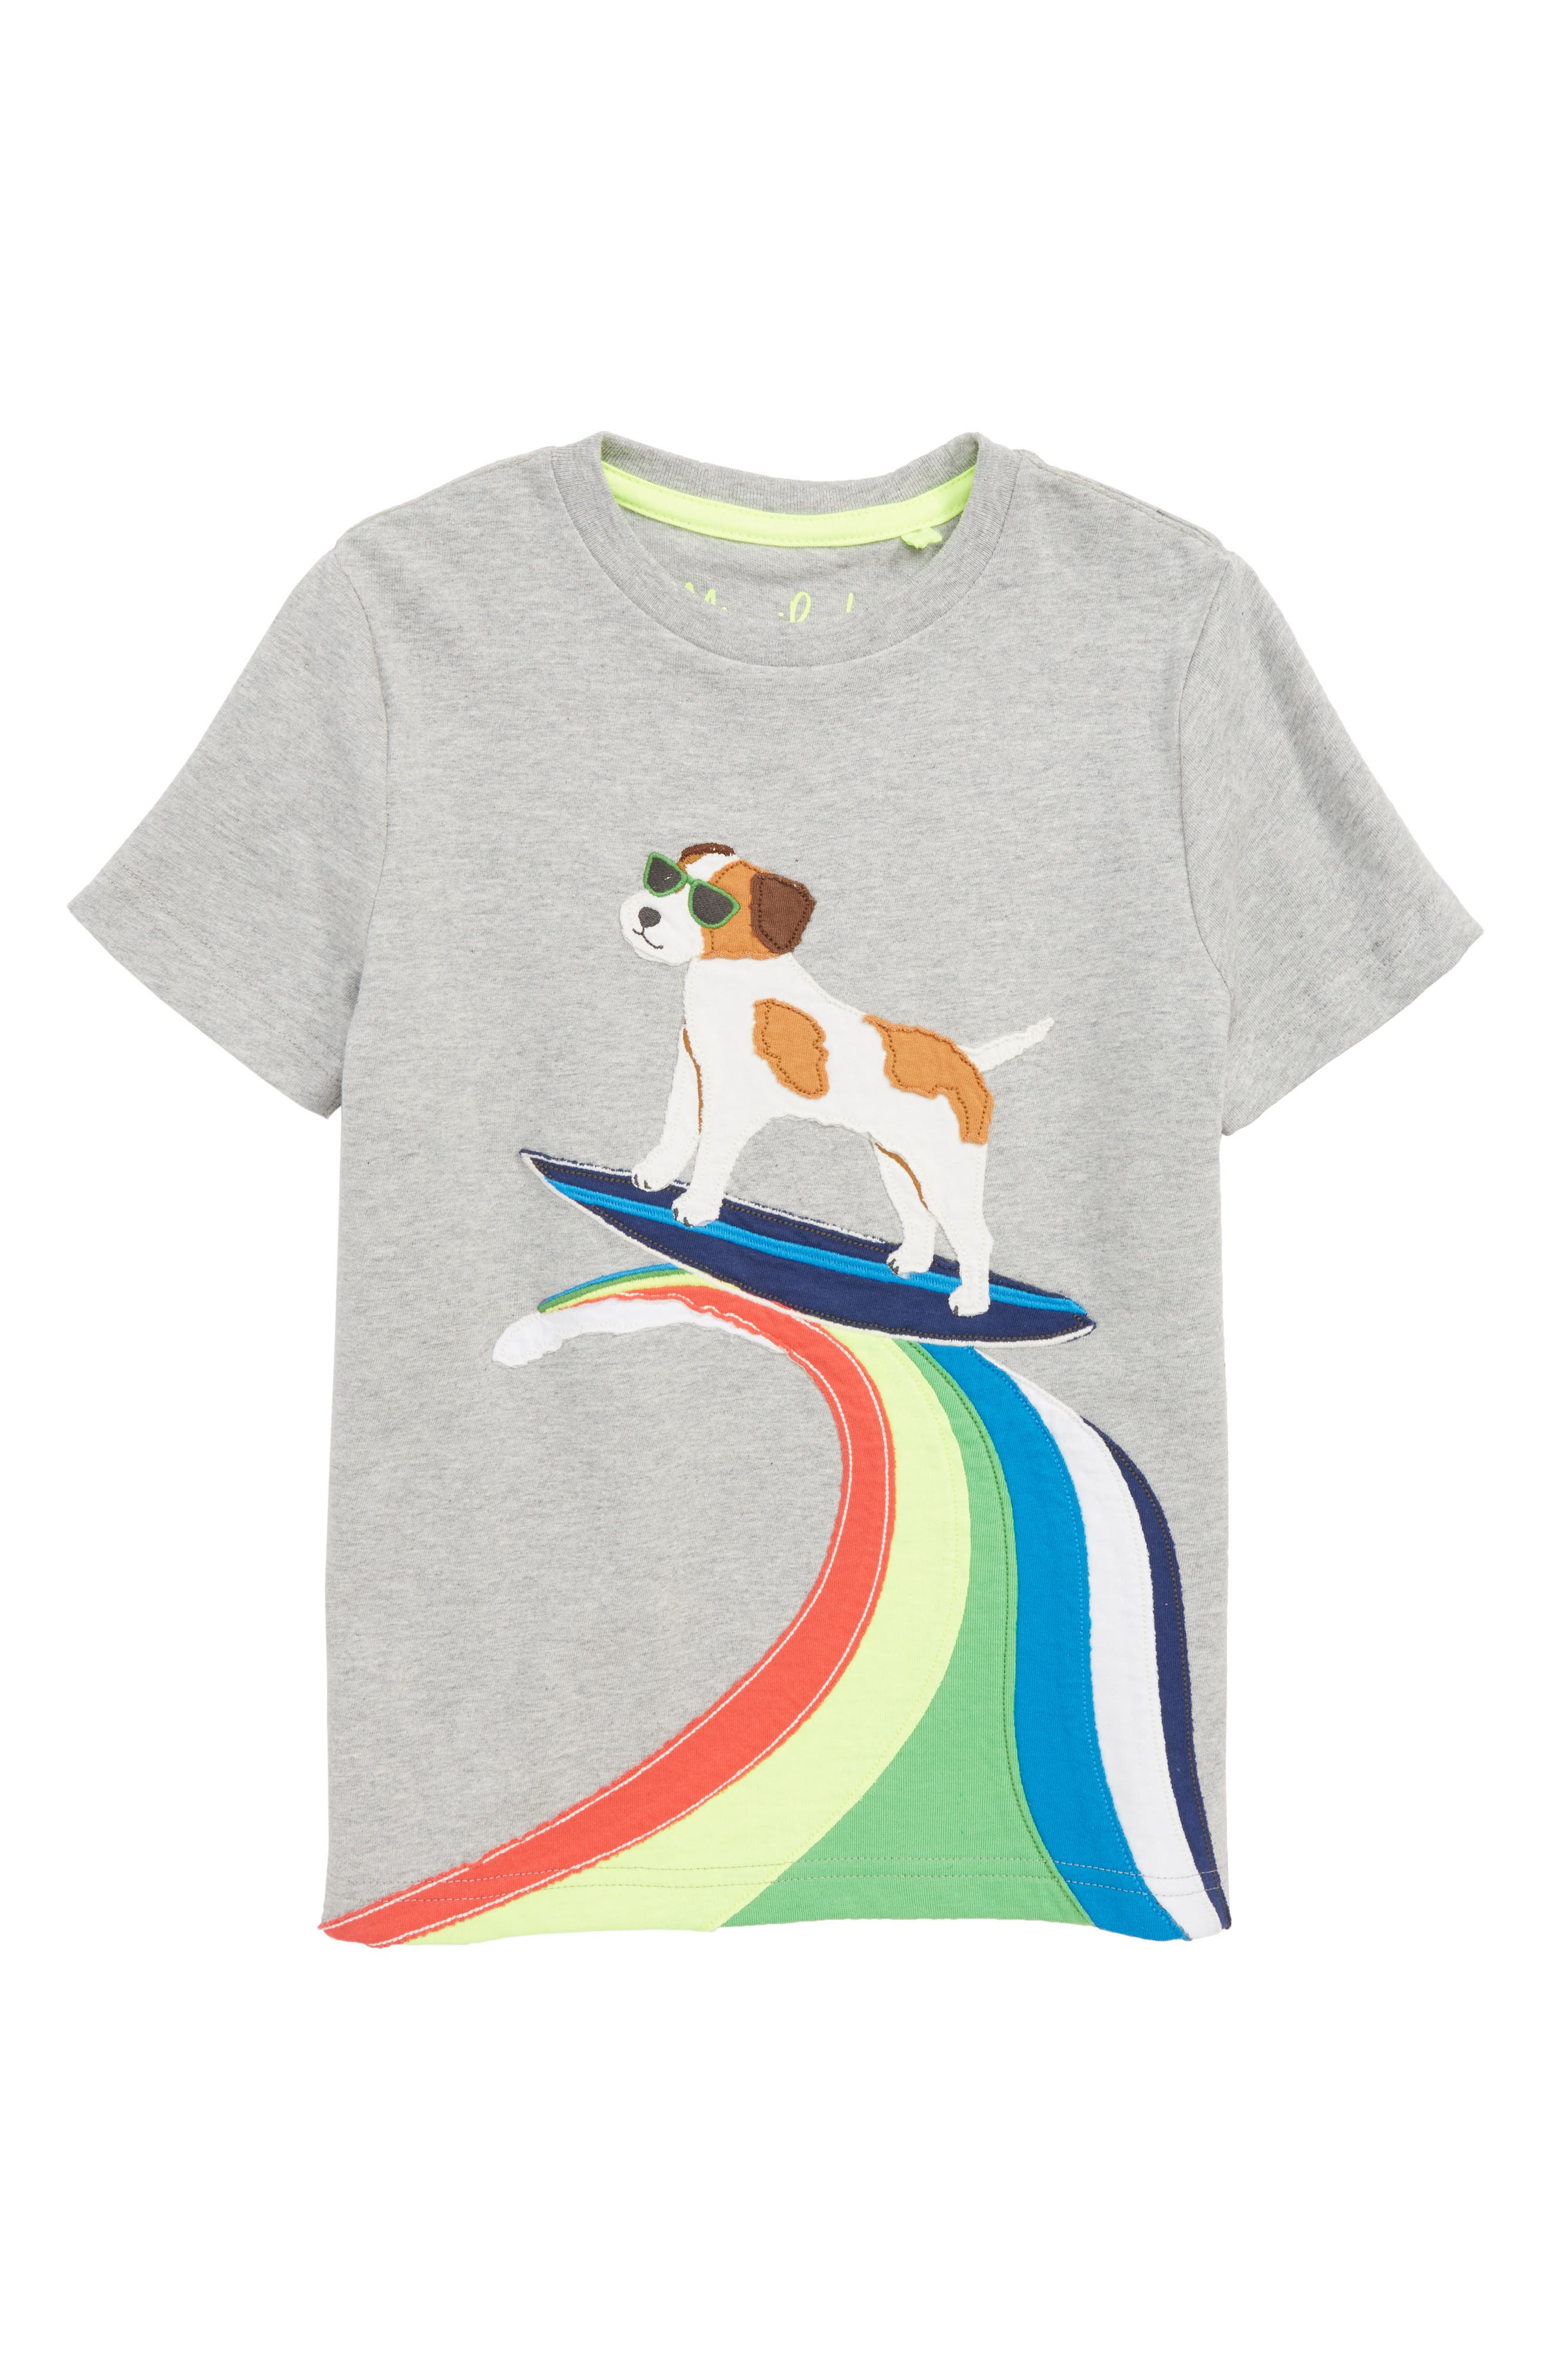 MINI BODEN Action Appliqué T-Shirt, Main, color, 034